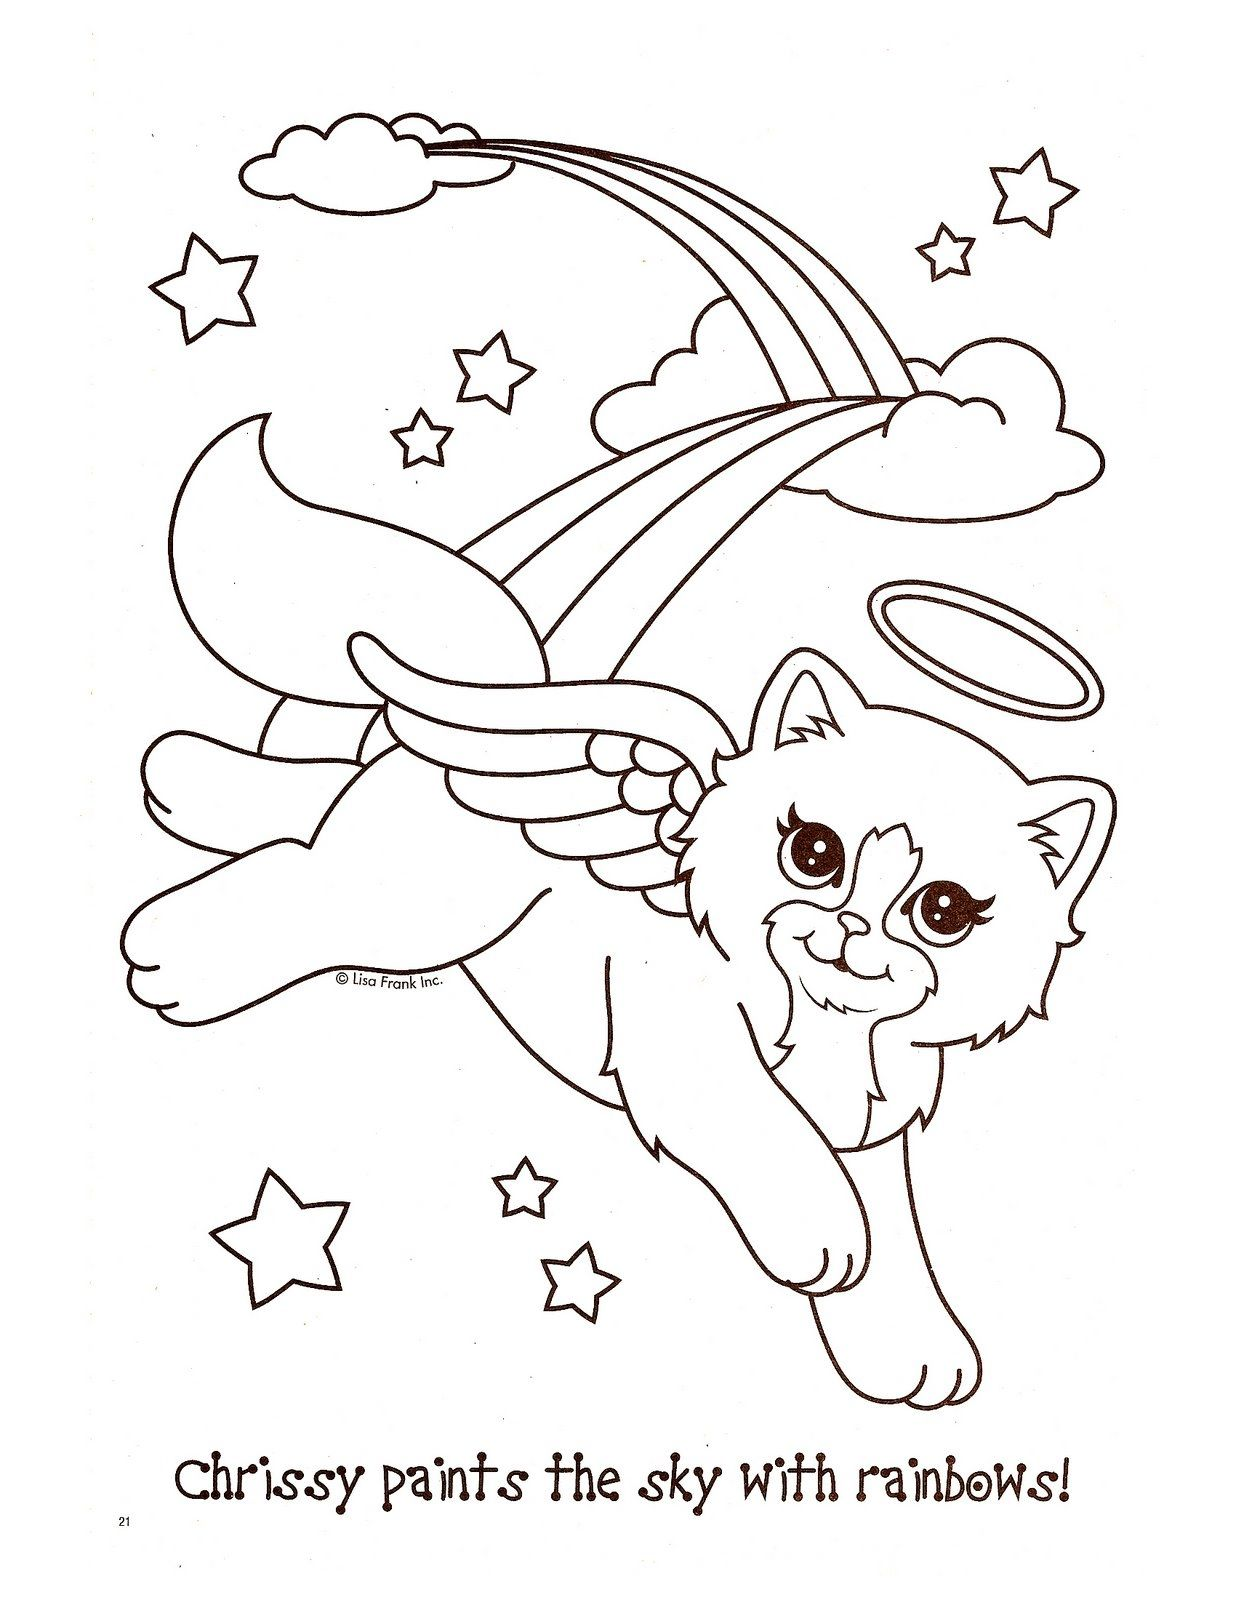 Angel Kitty Coloring Pages Gallery Sanat Sanat Etkinlikleri